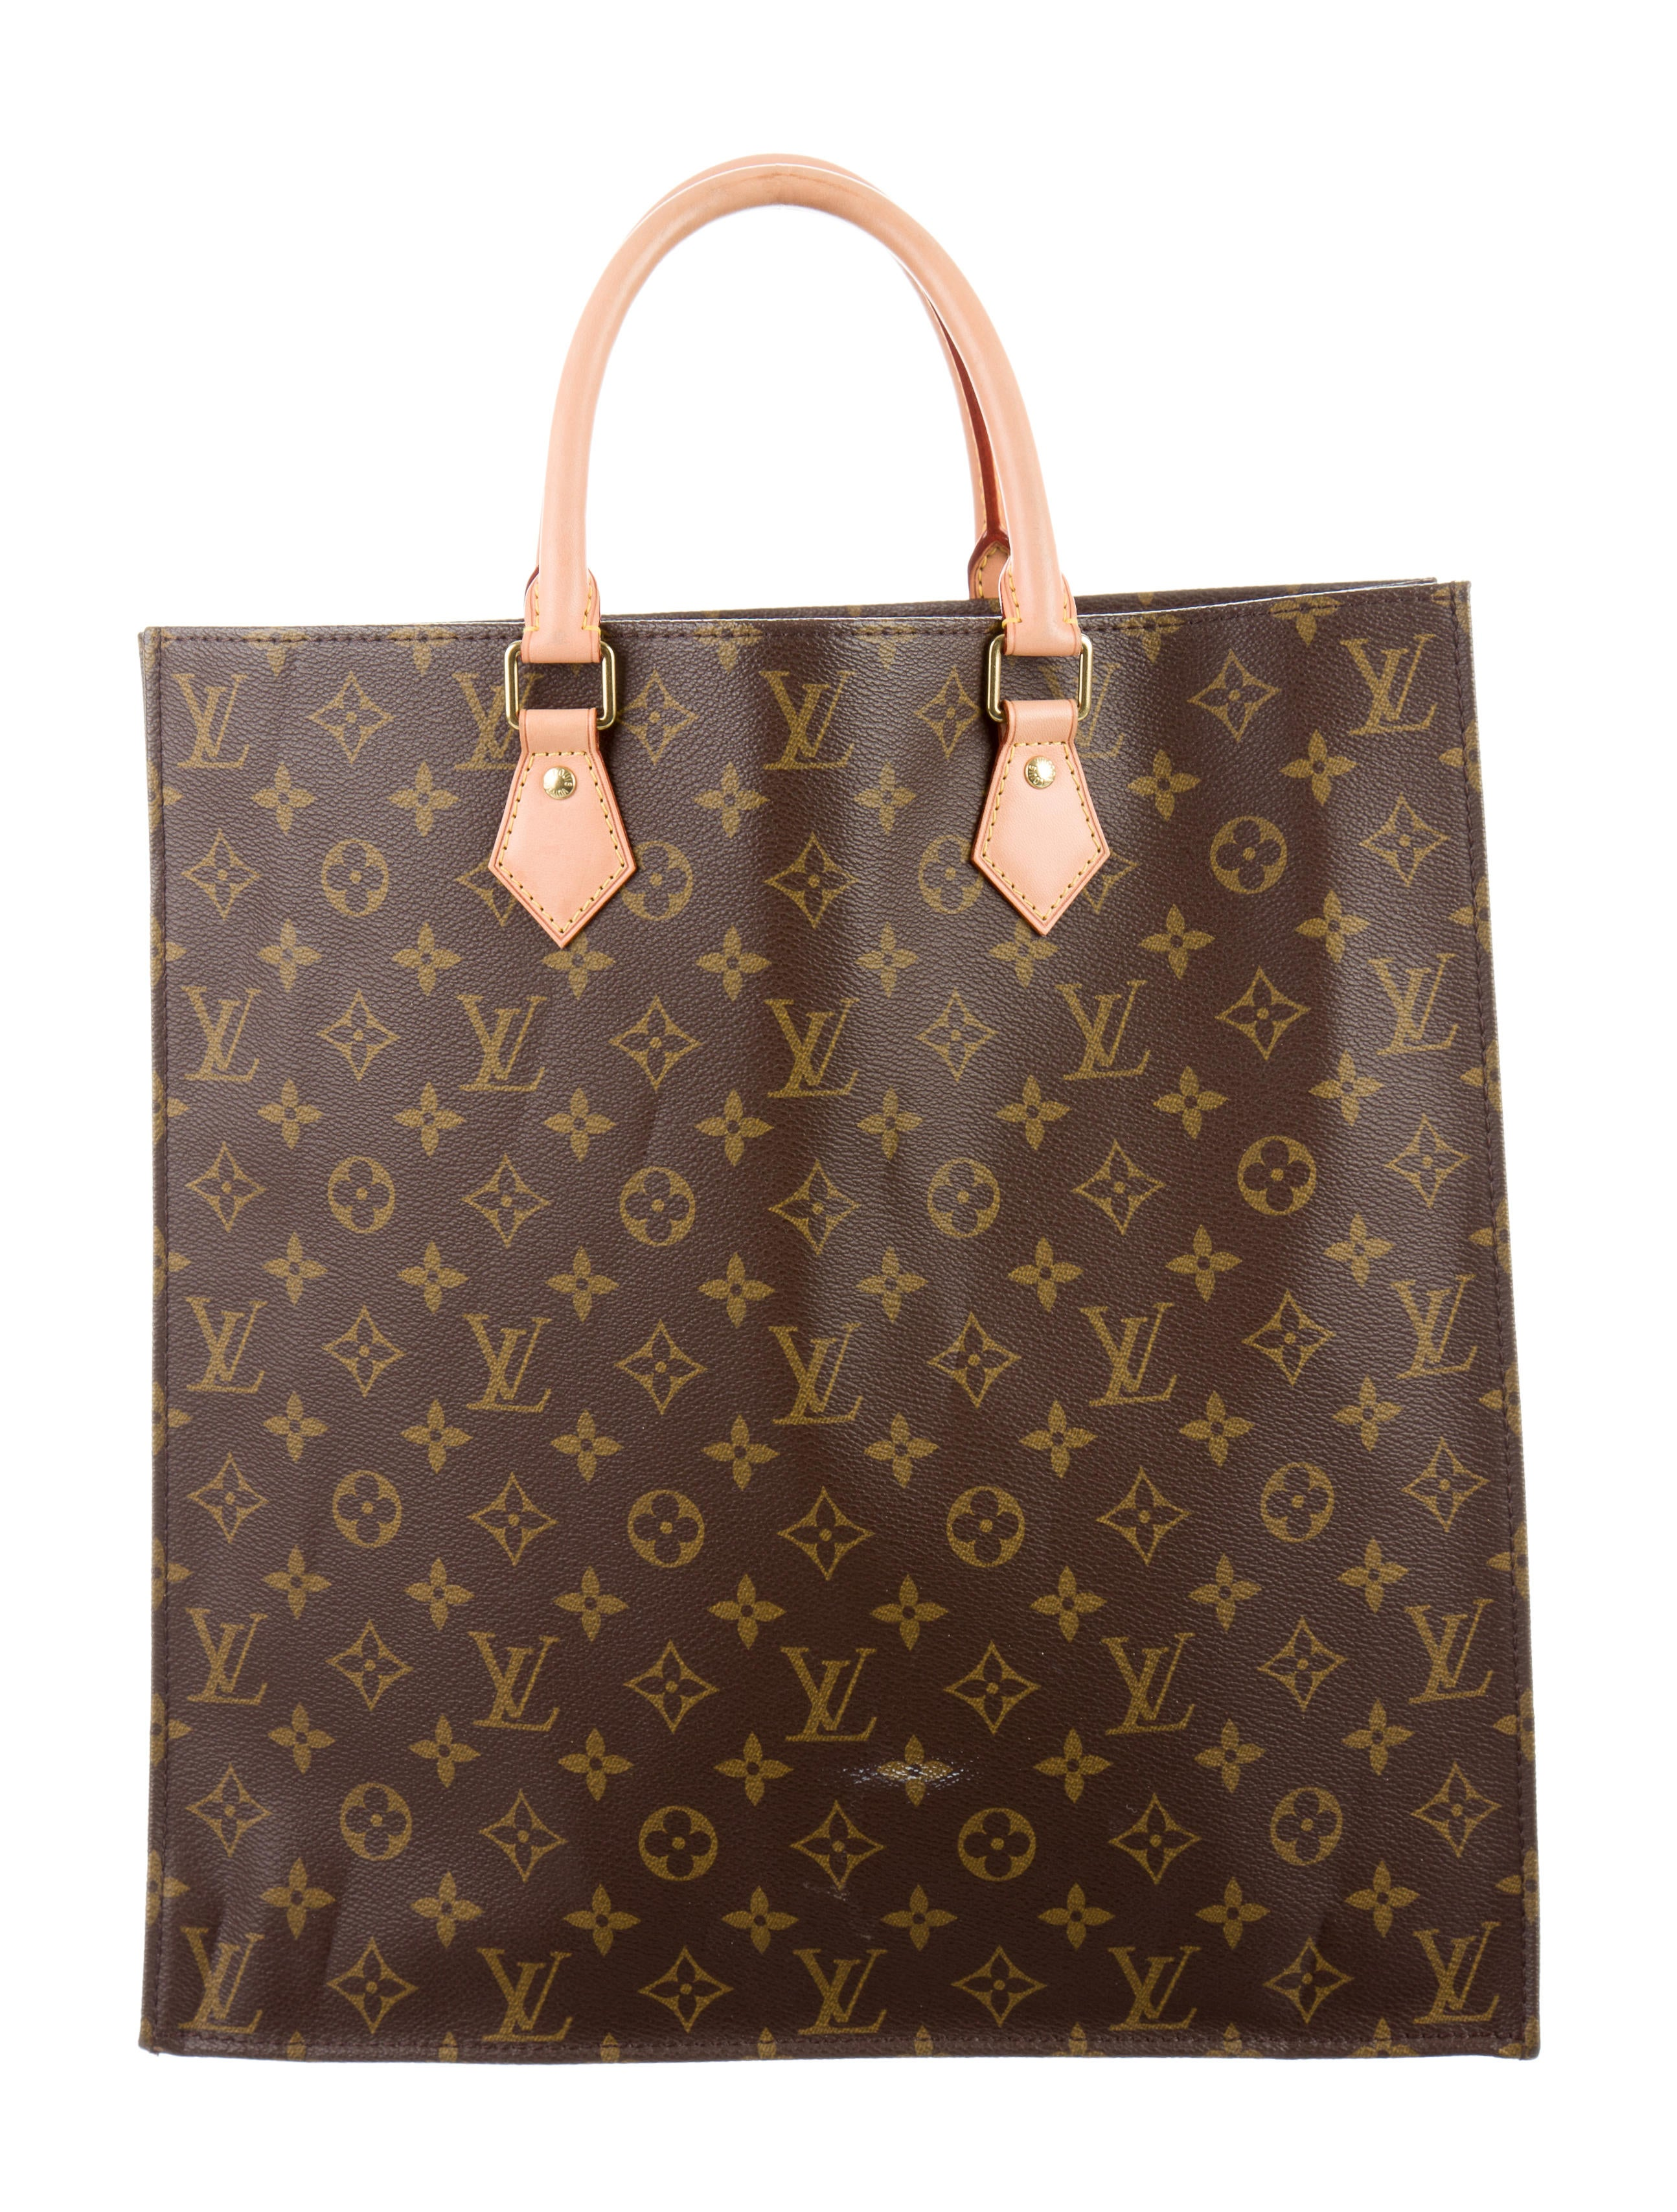 Louis vuitton monogram sac plat nm handbags lou107912 for Louis vuitton monogram miroir sac plat